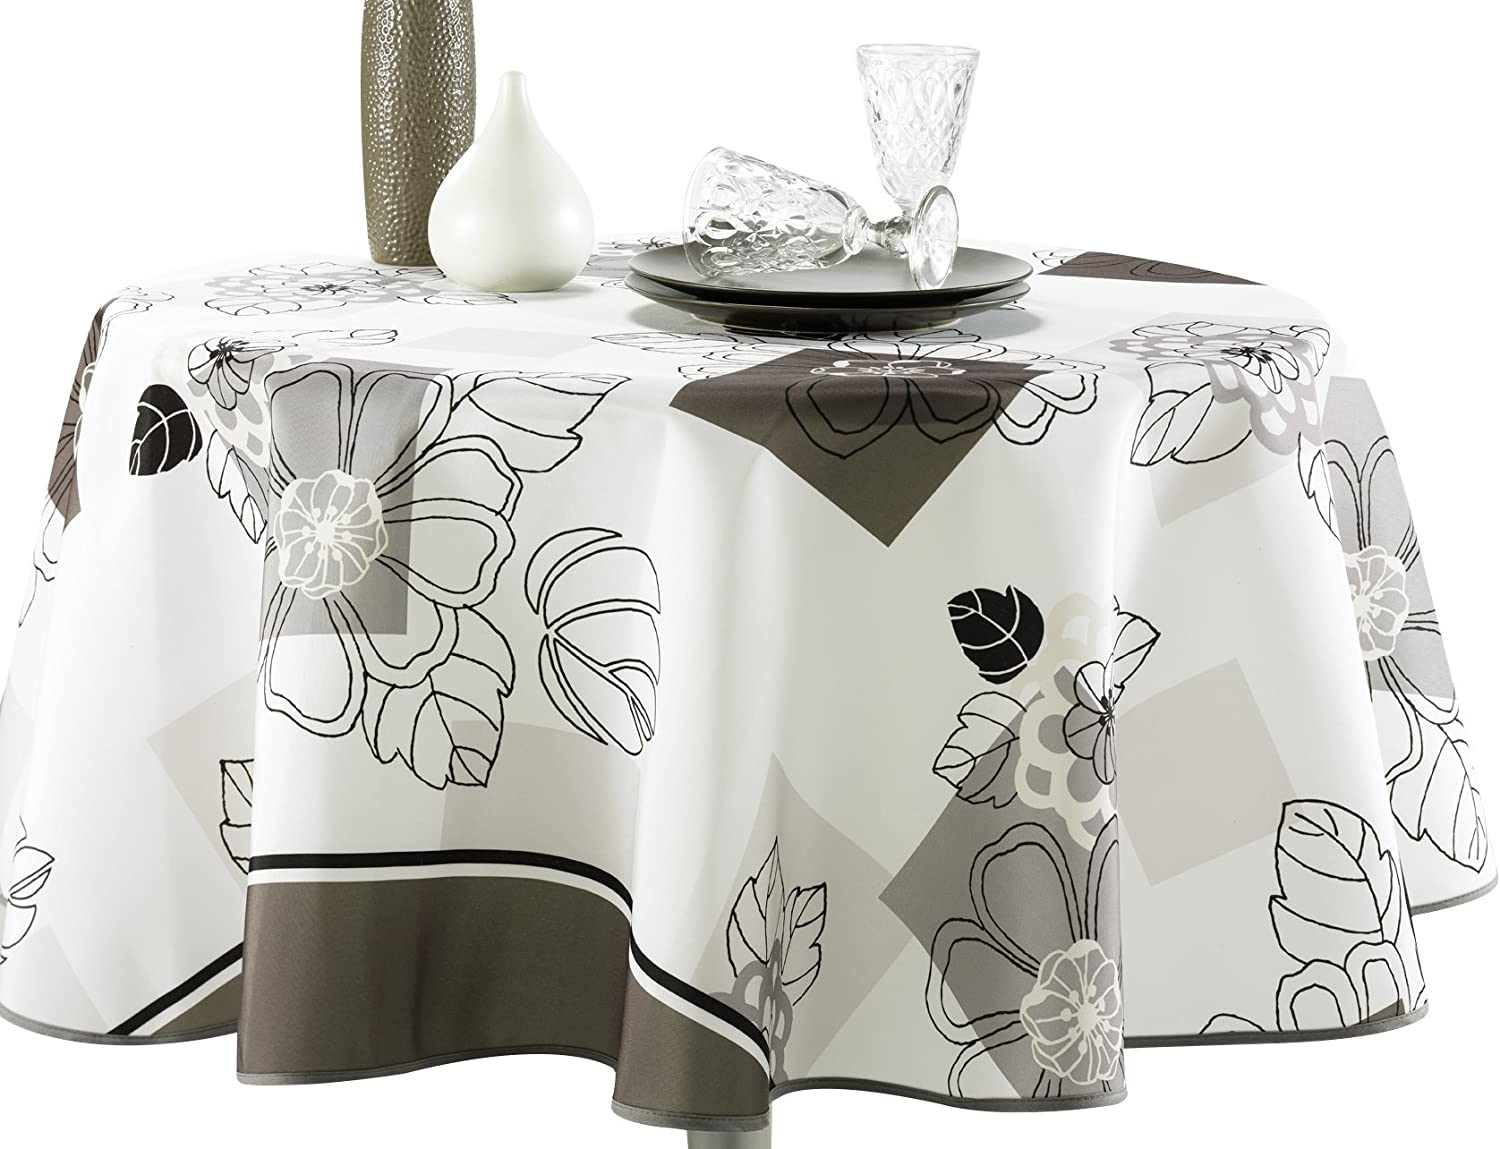 My Jolie Home 63-Inch Round Tablecloth Ivory White Floral Blossom, Stain Resistant, Washable, Liquid Spills Bead up, Seats 4 to 6 People (Other 60 x 80, 60 x 95, 60 x 120).